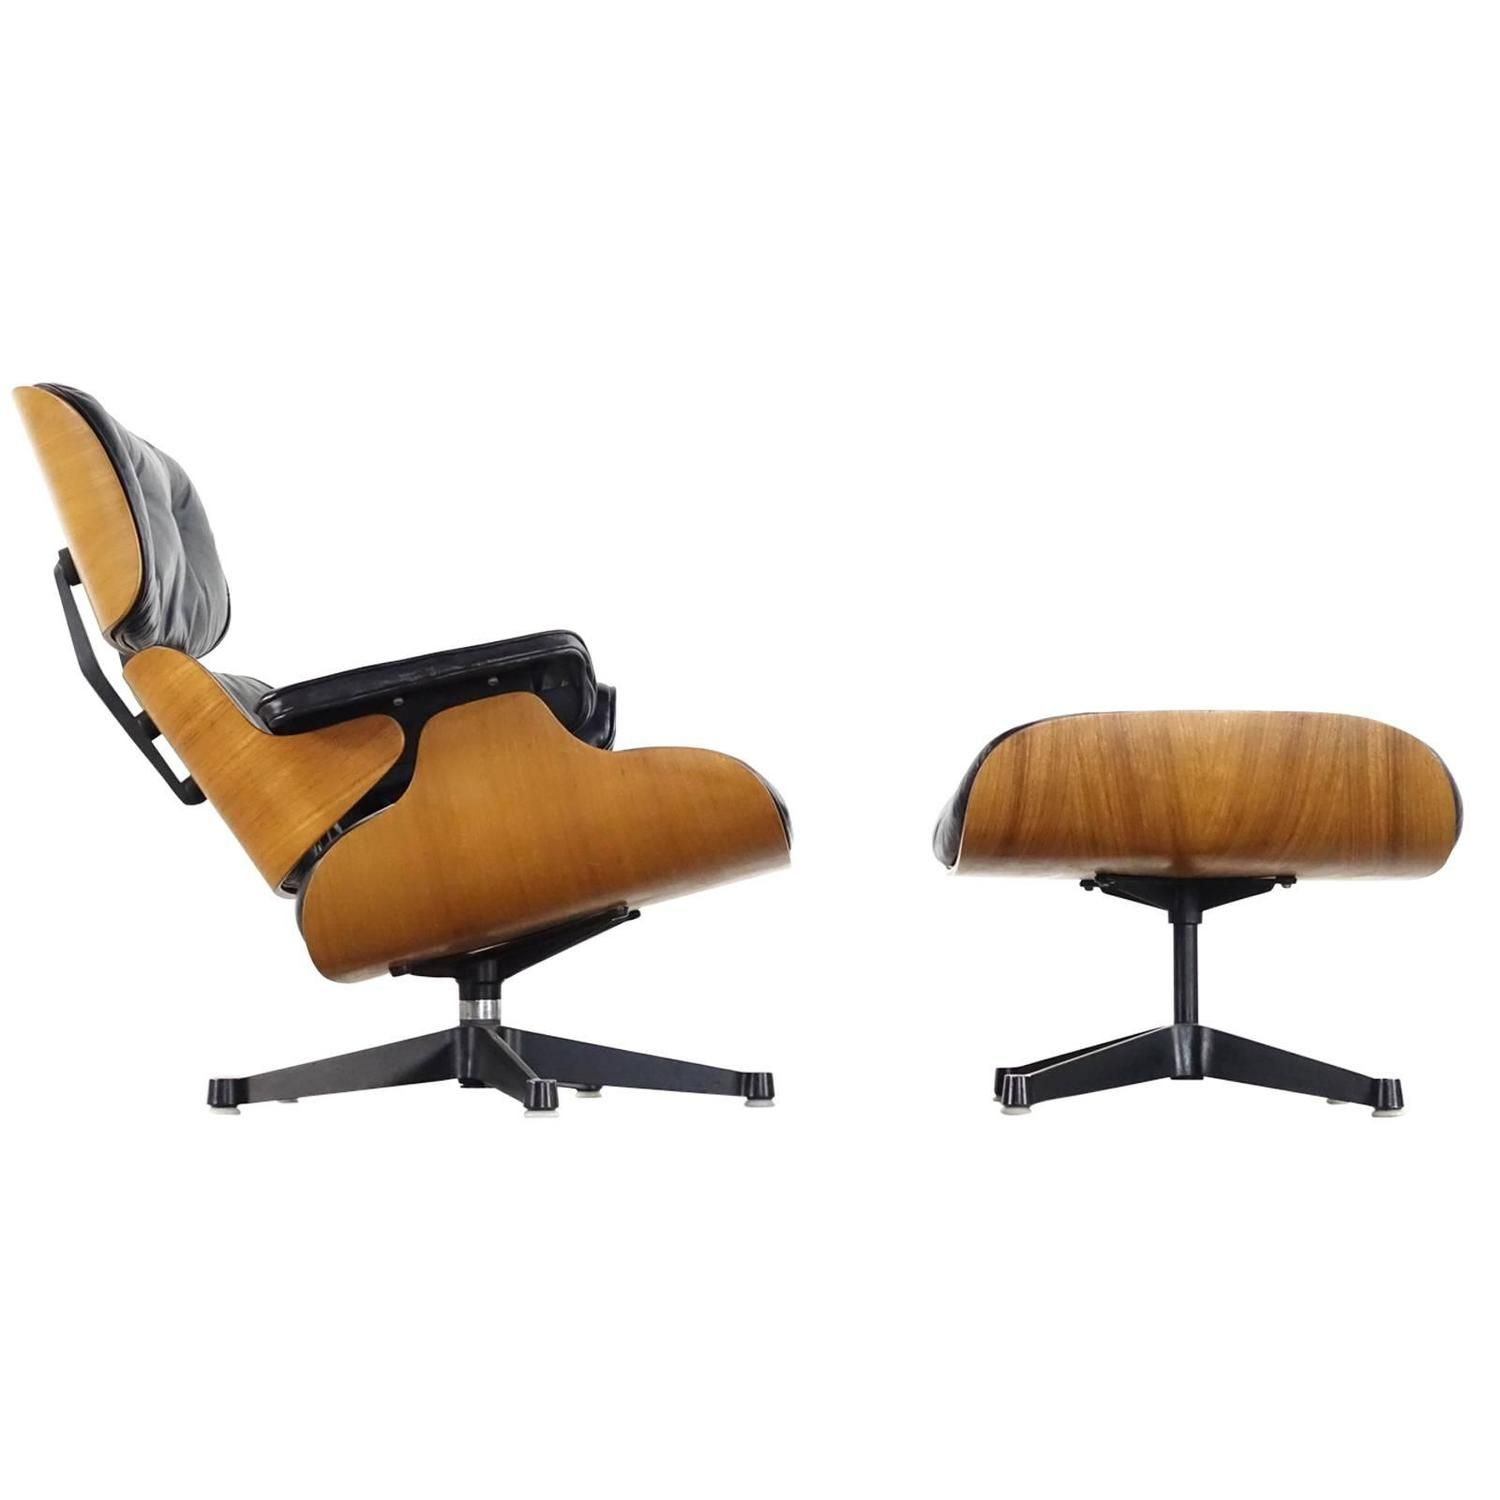 Charles Eames Lounge Chair Very Early Charles & Ray Eames Lounge Chair From Contura 1957-1965 | Eames Lounge Chair, Lounge Chair, Modern Swivel Chair